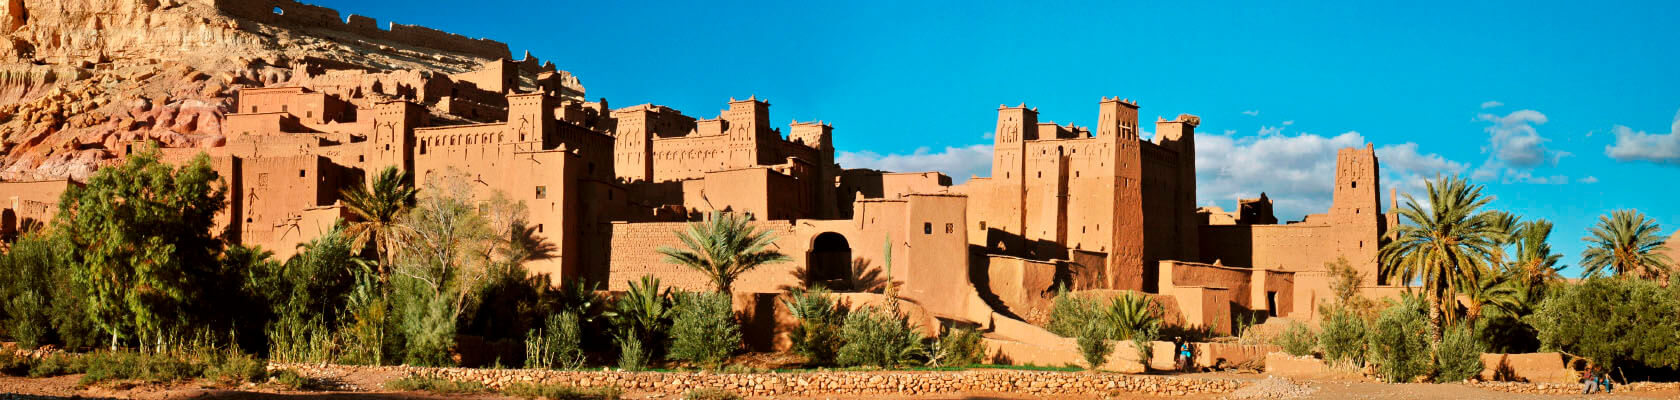 The ksar of Ait Benhaddou